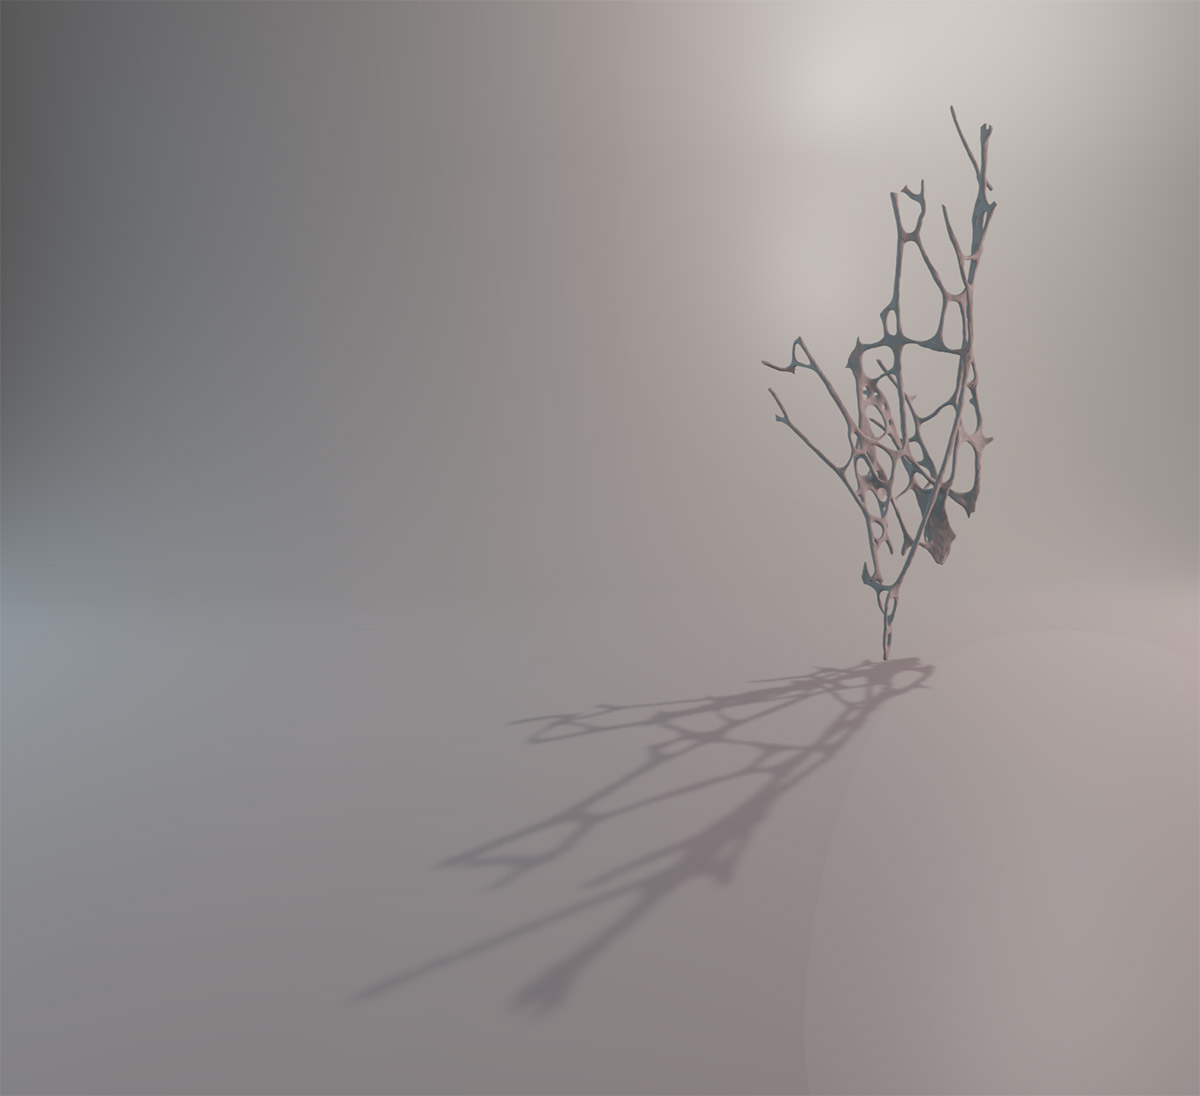 White branched structure - like branches of a tree - suspended in room